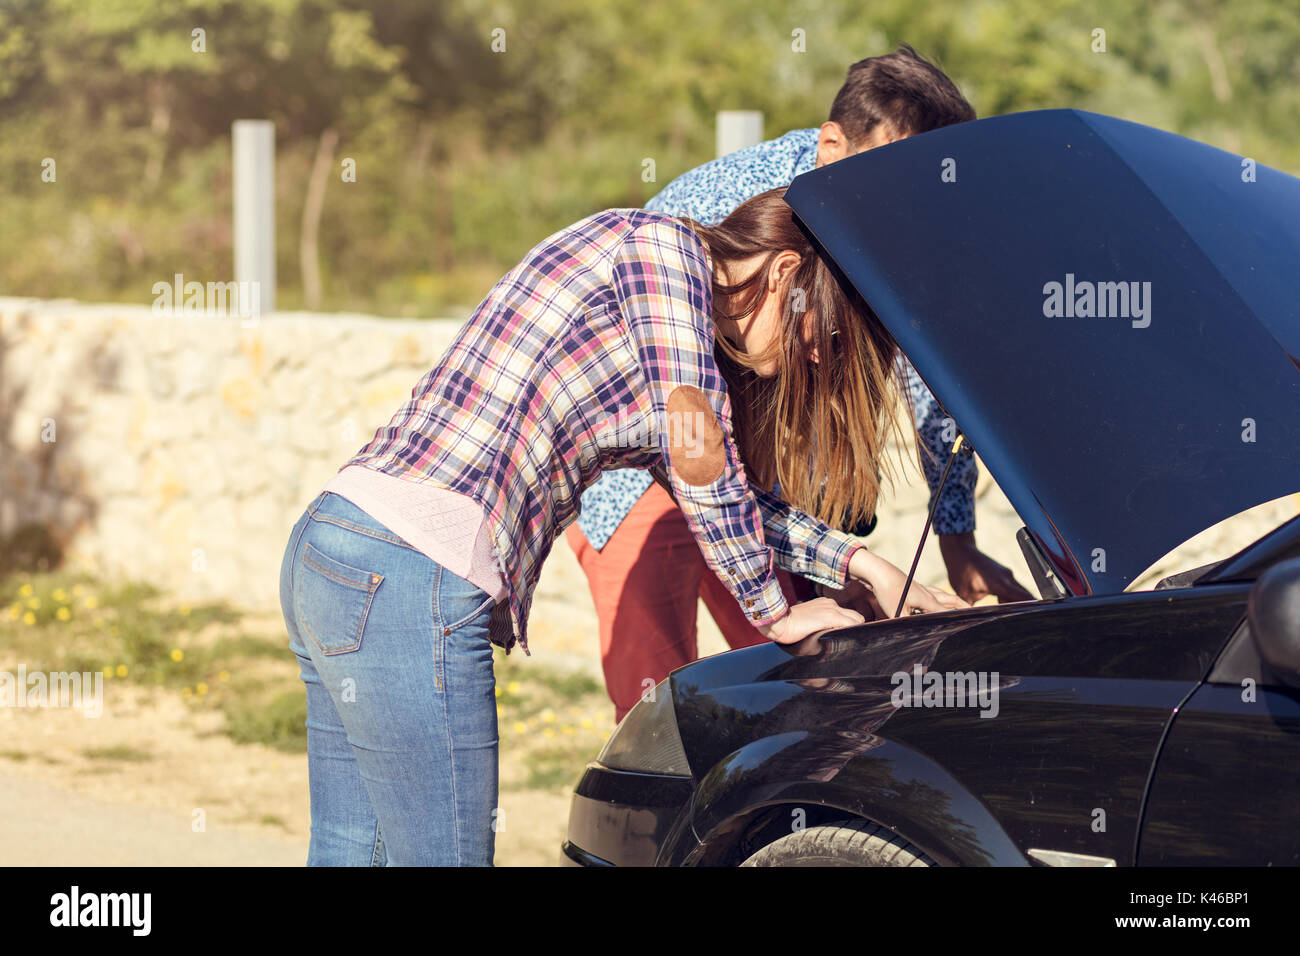 Young couple after a car breakdown at the side of the road - Stock Image